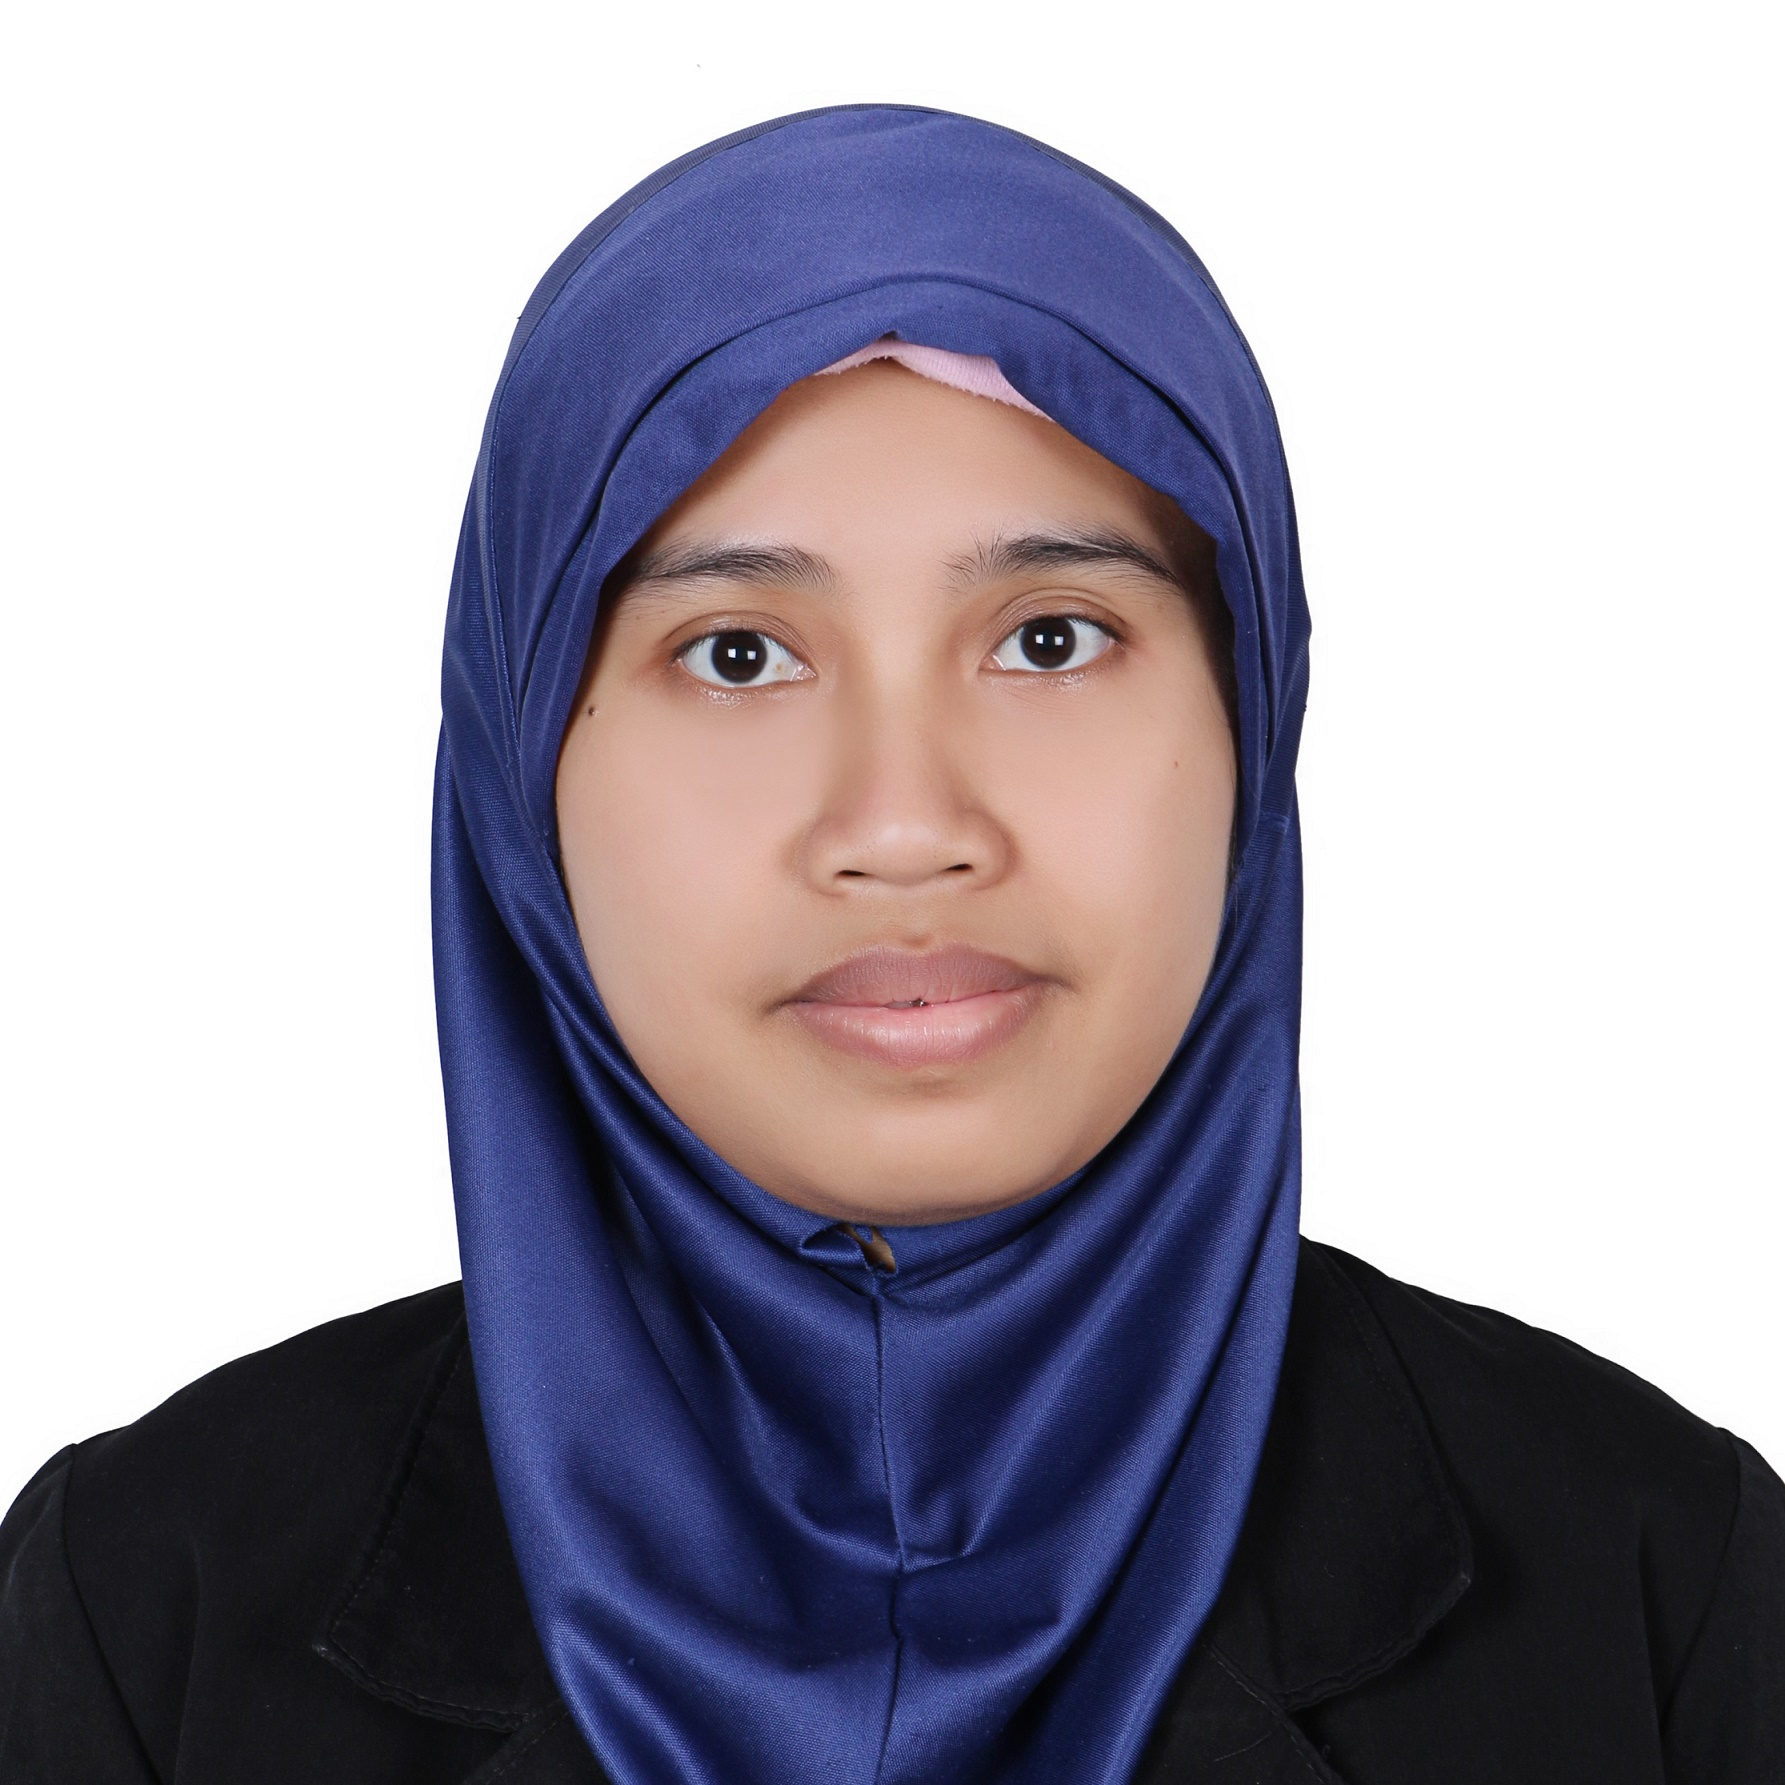 Afiahayati, S.Kom., M.Cs., Ph.D